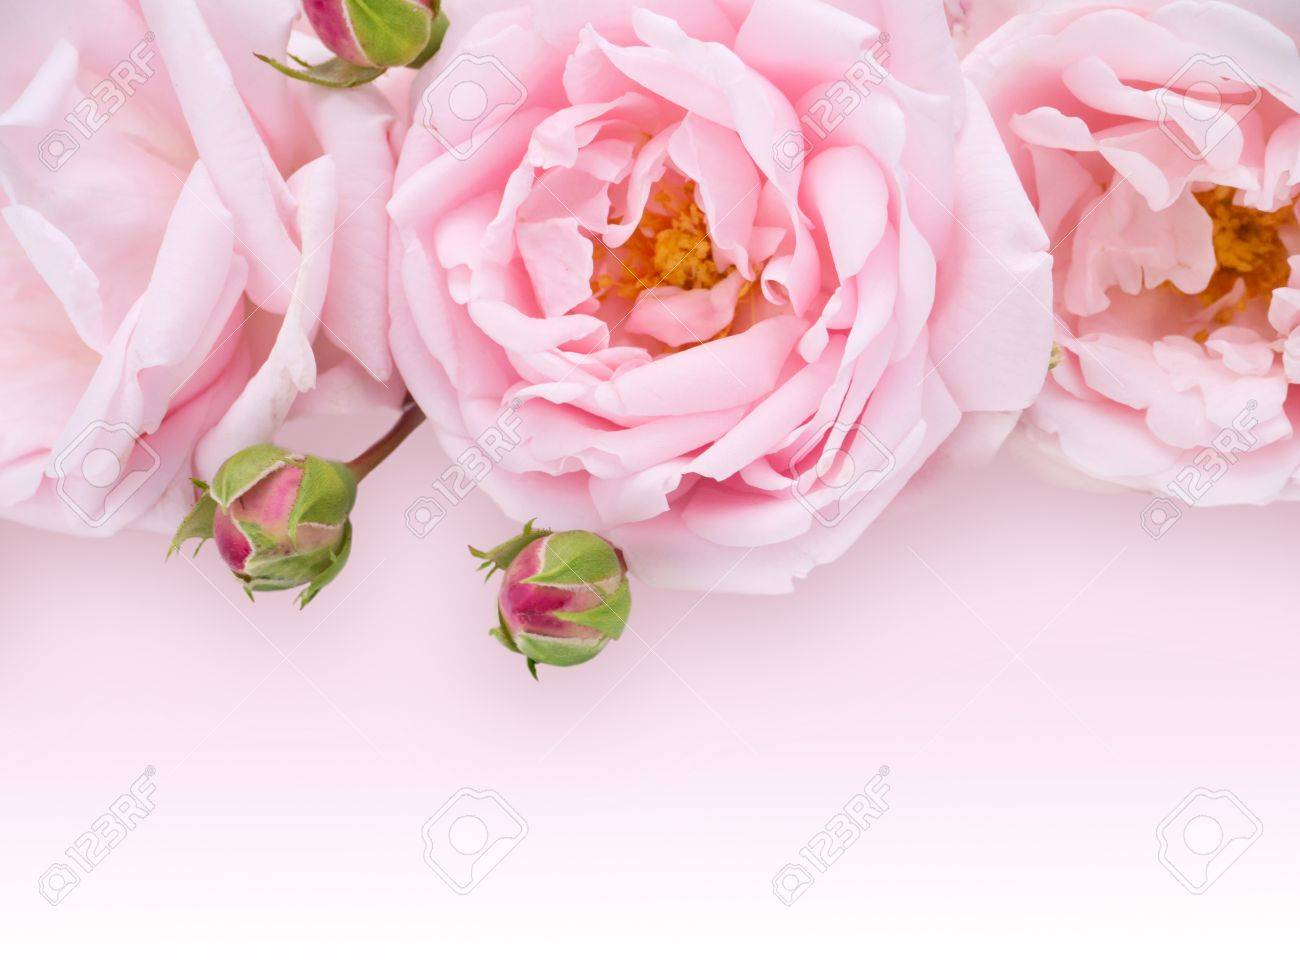 Pale Pink Roses Bouquet On The Light Pink Background Stock Photo Picture And Royalty Free Image Image 47876161